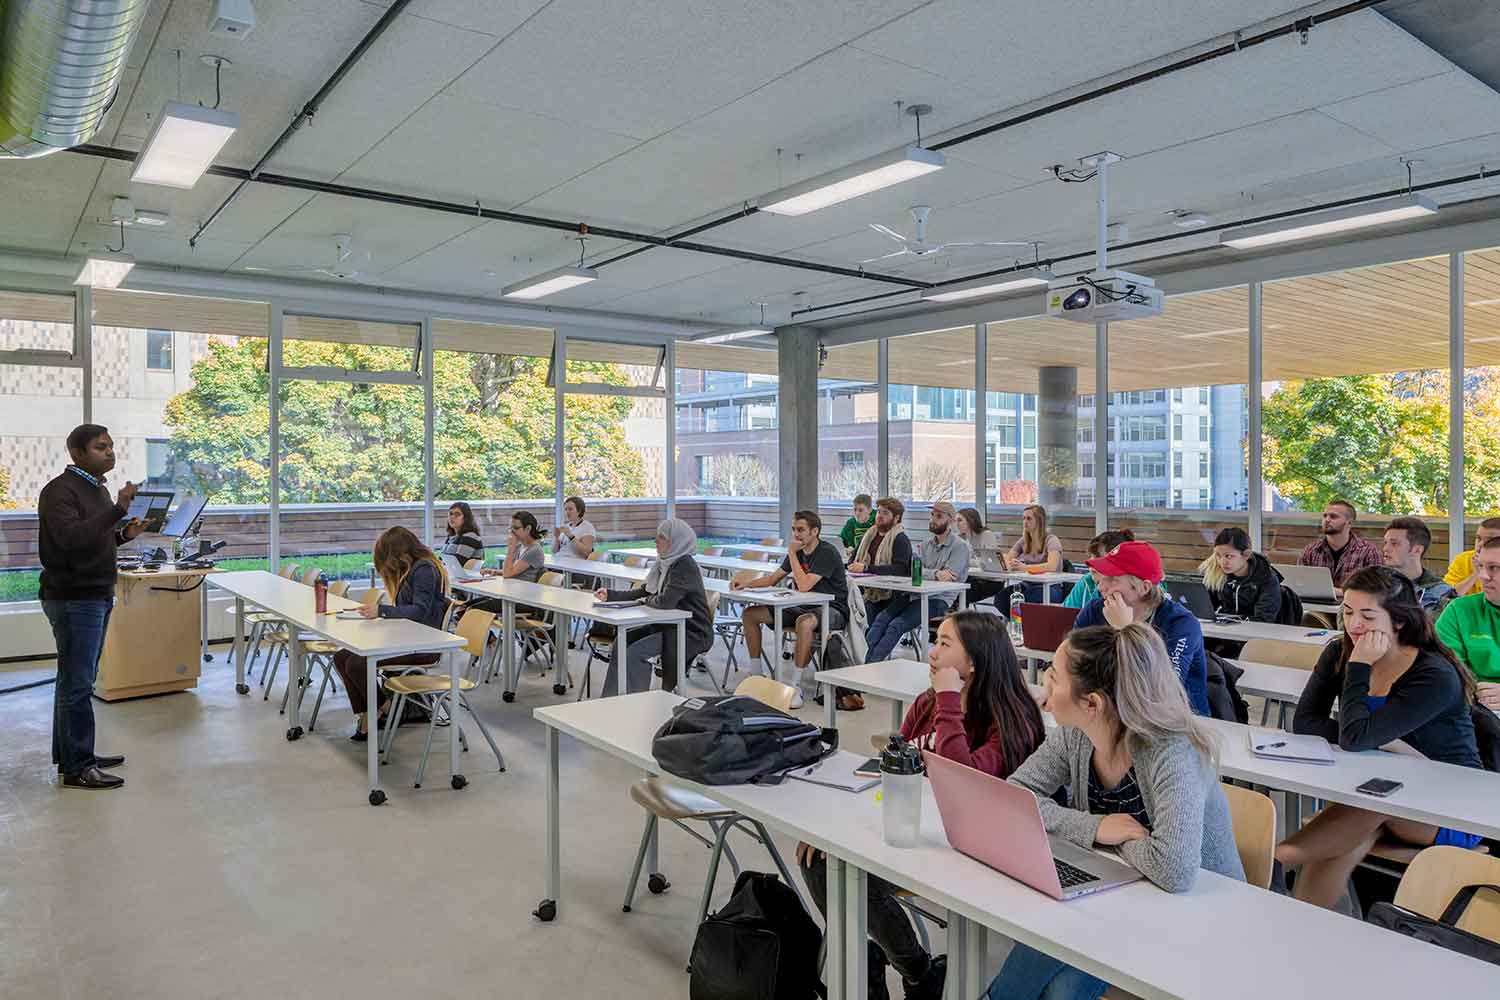 Classroom. Large overhands created by the building geometry reduce solar heat gain. Operable windows provide natural ventilation in all classrooms in the passively cooled new addition. Brad Feinknopf